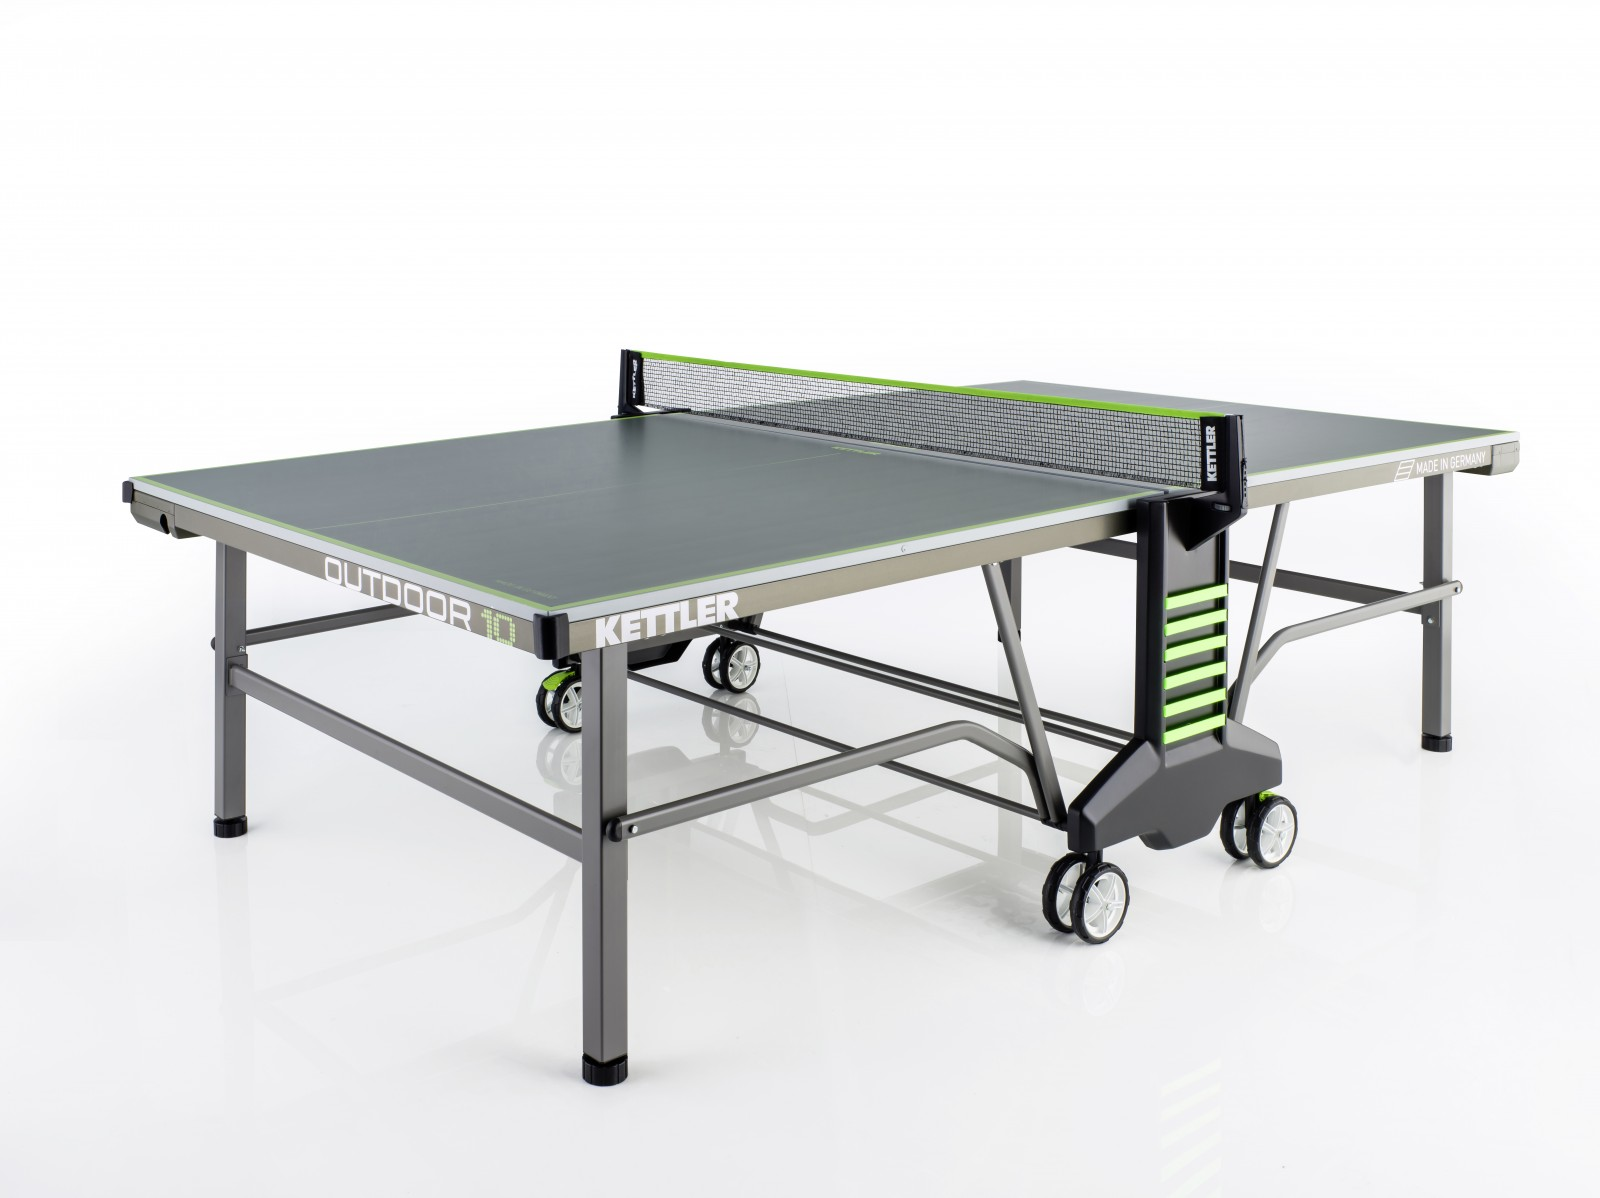 Kettler table tennis table outdoor 10 buy with 88 customer for Table kettler